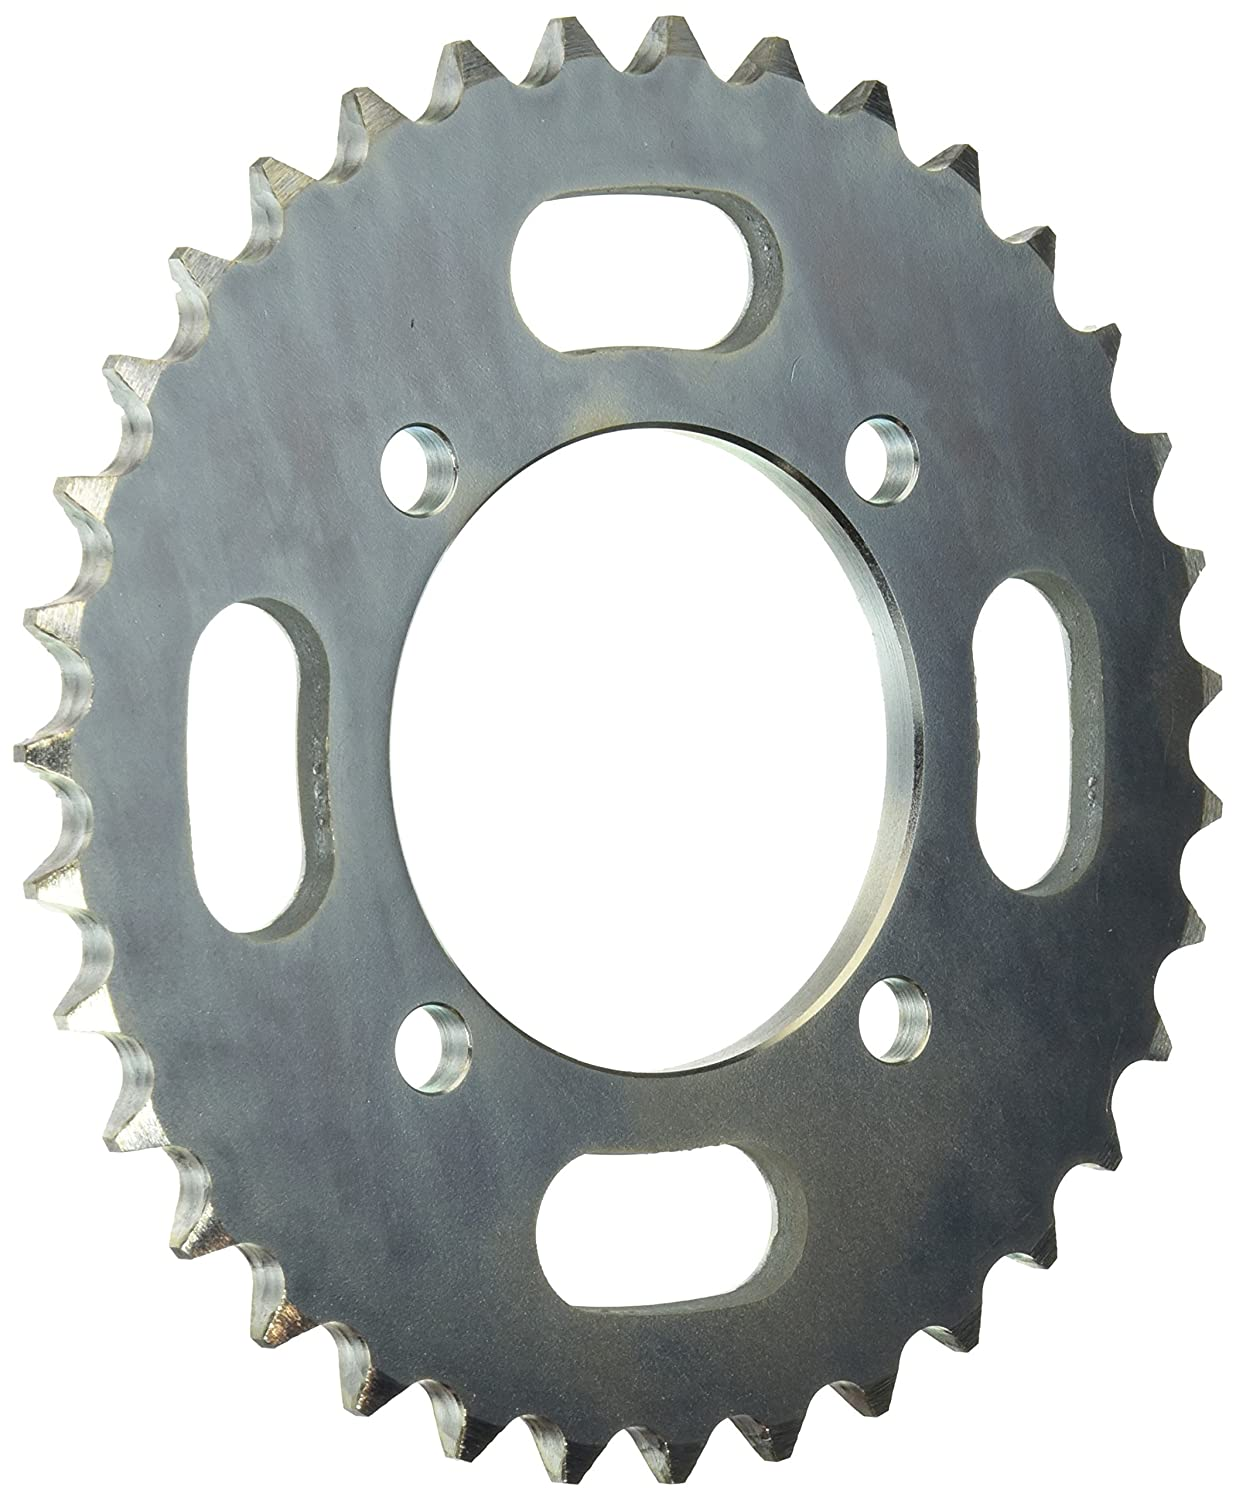 Sunstar 2-111735 35-Teeth 420 Chain Size Rear Steel Sprocket